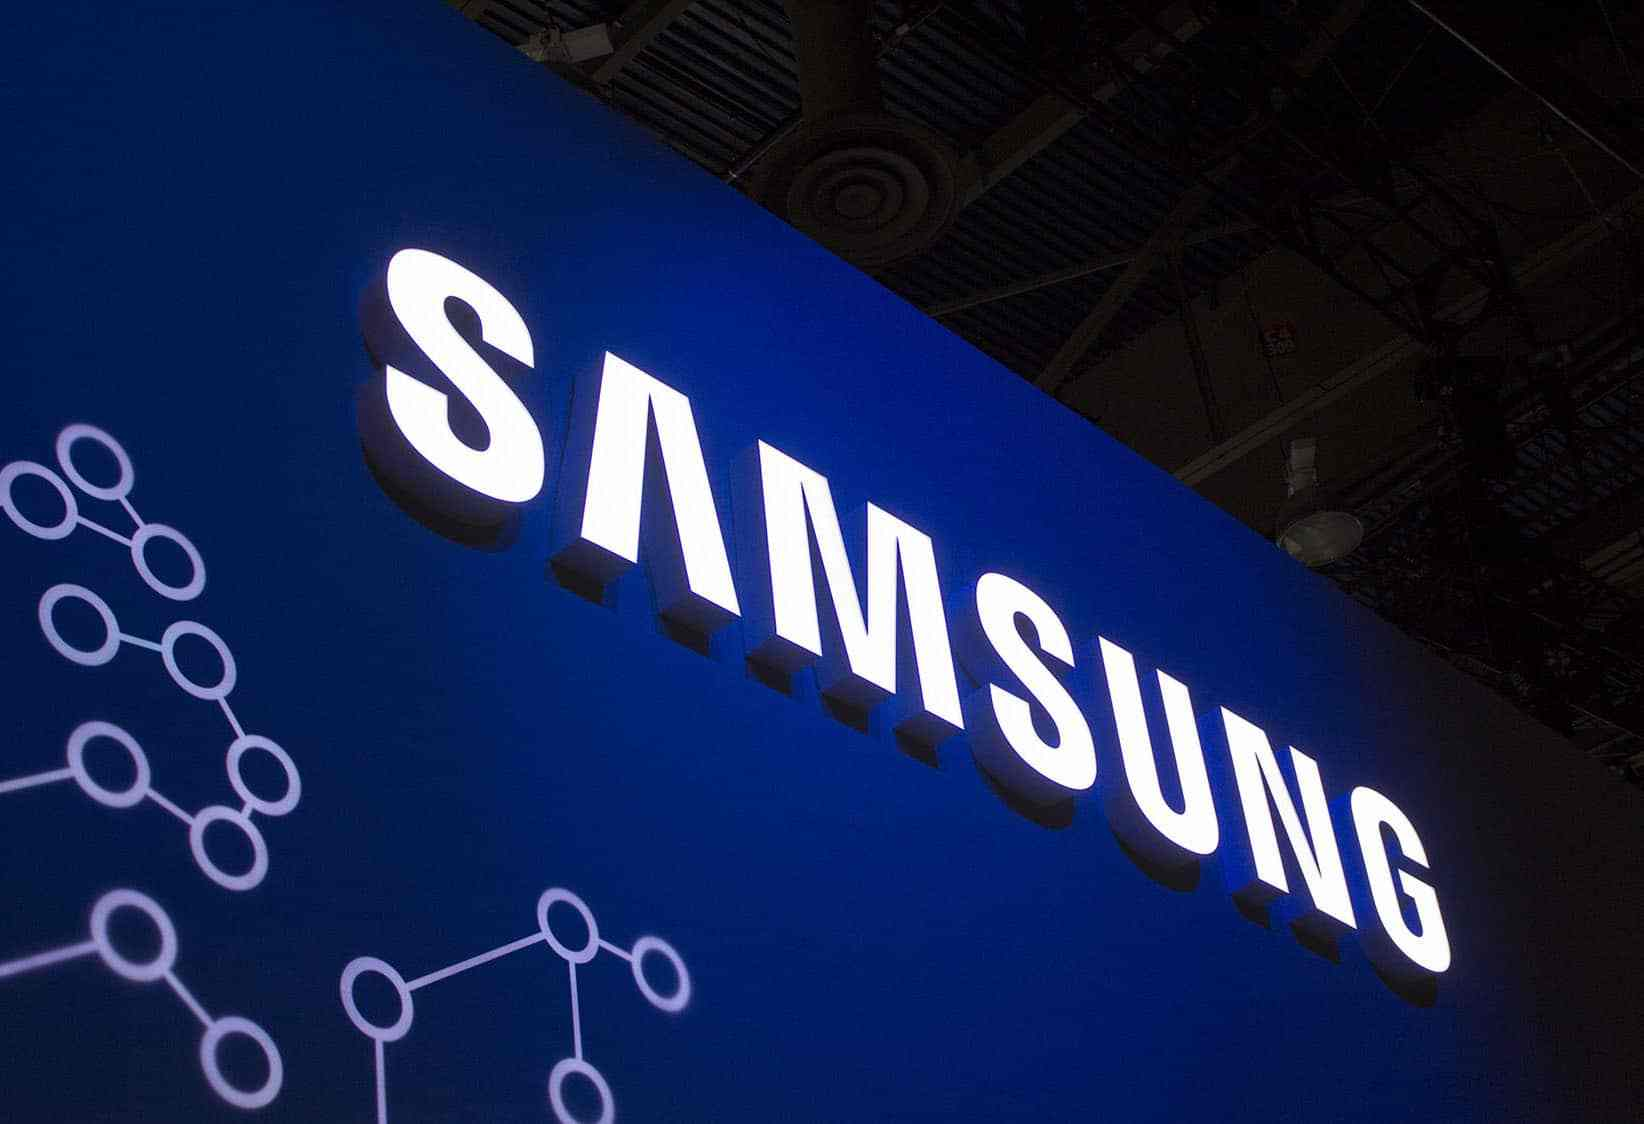 Samsung to close mobile phone plant in China's Tianjin